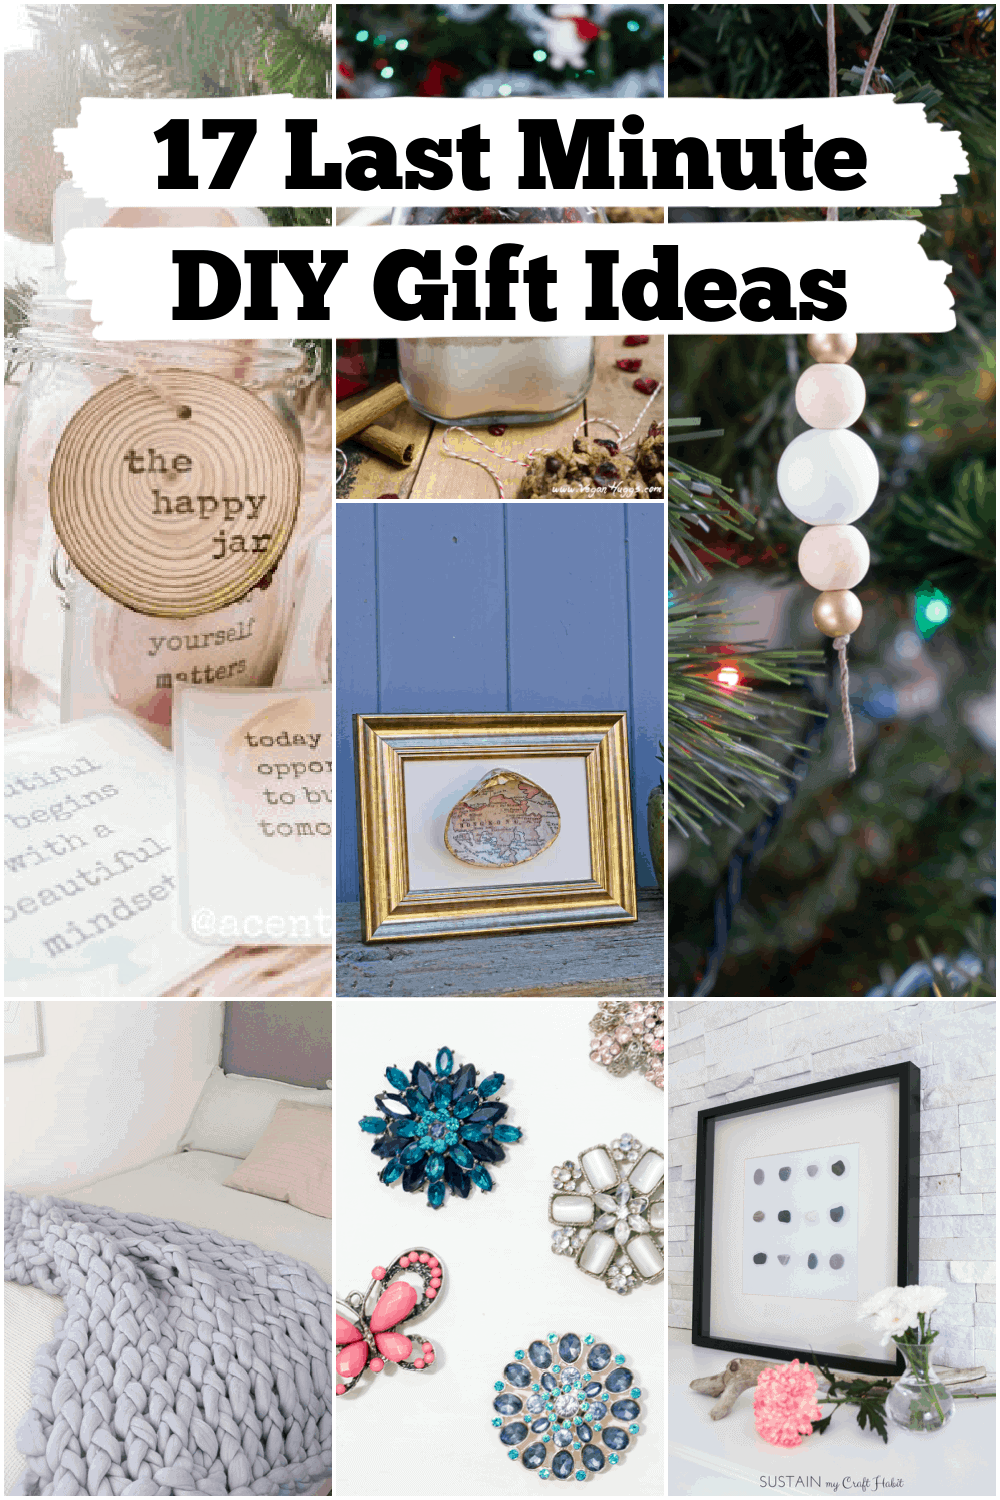 Are you in need of a last minute gift for someone?  If so, check out these amazing last minute DIY gift ideas.